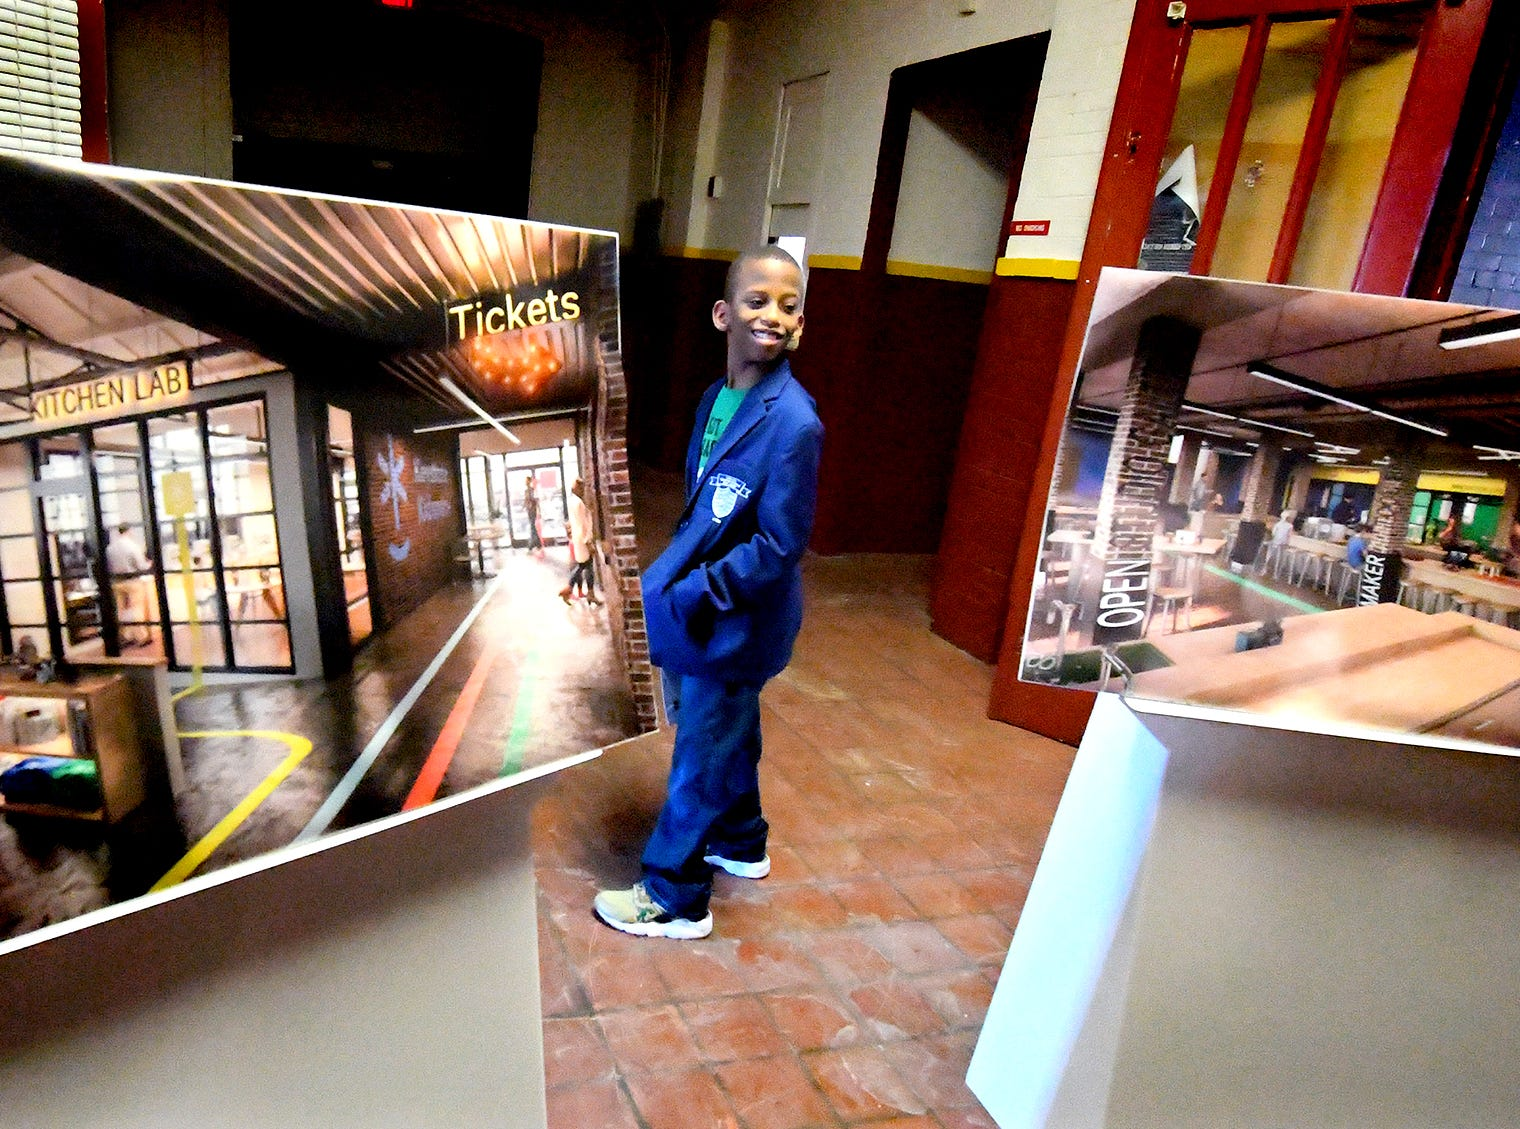 Lincoln Charter School ambassador Honor Franklin, a fourth-grader, stand between artist's renderings while touring the York Armory during a press event there Thursday, Feb. 28, 2019. Keystone Kidspace founders announced the launch of a $6 million capital campaign to transform the former armory building into an experiential learning center. Construction is slated to start this summer with an opening date of summer 2020. Bill Kalina photo